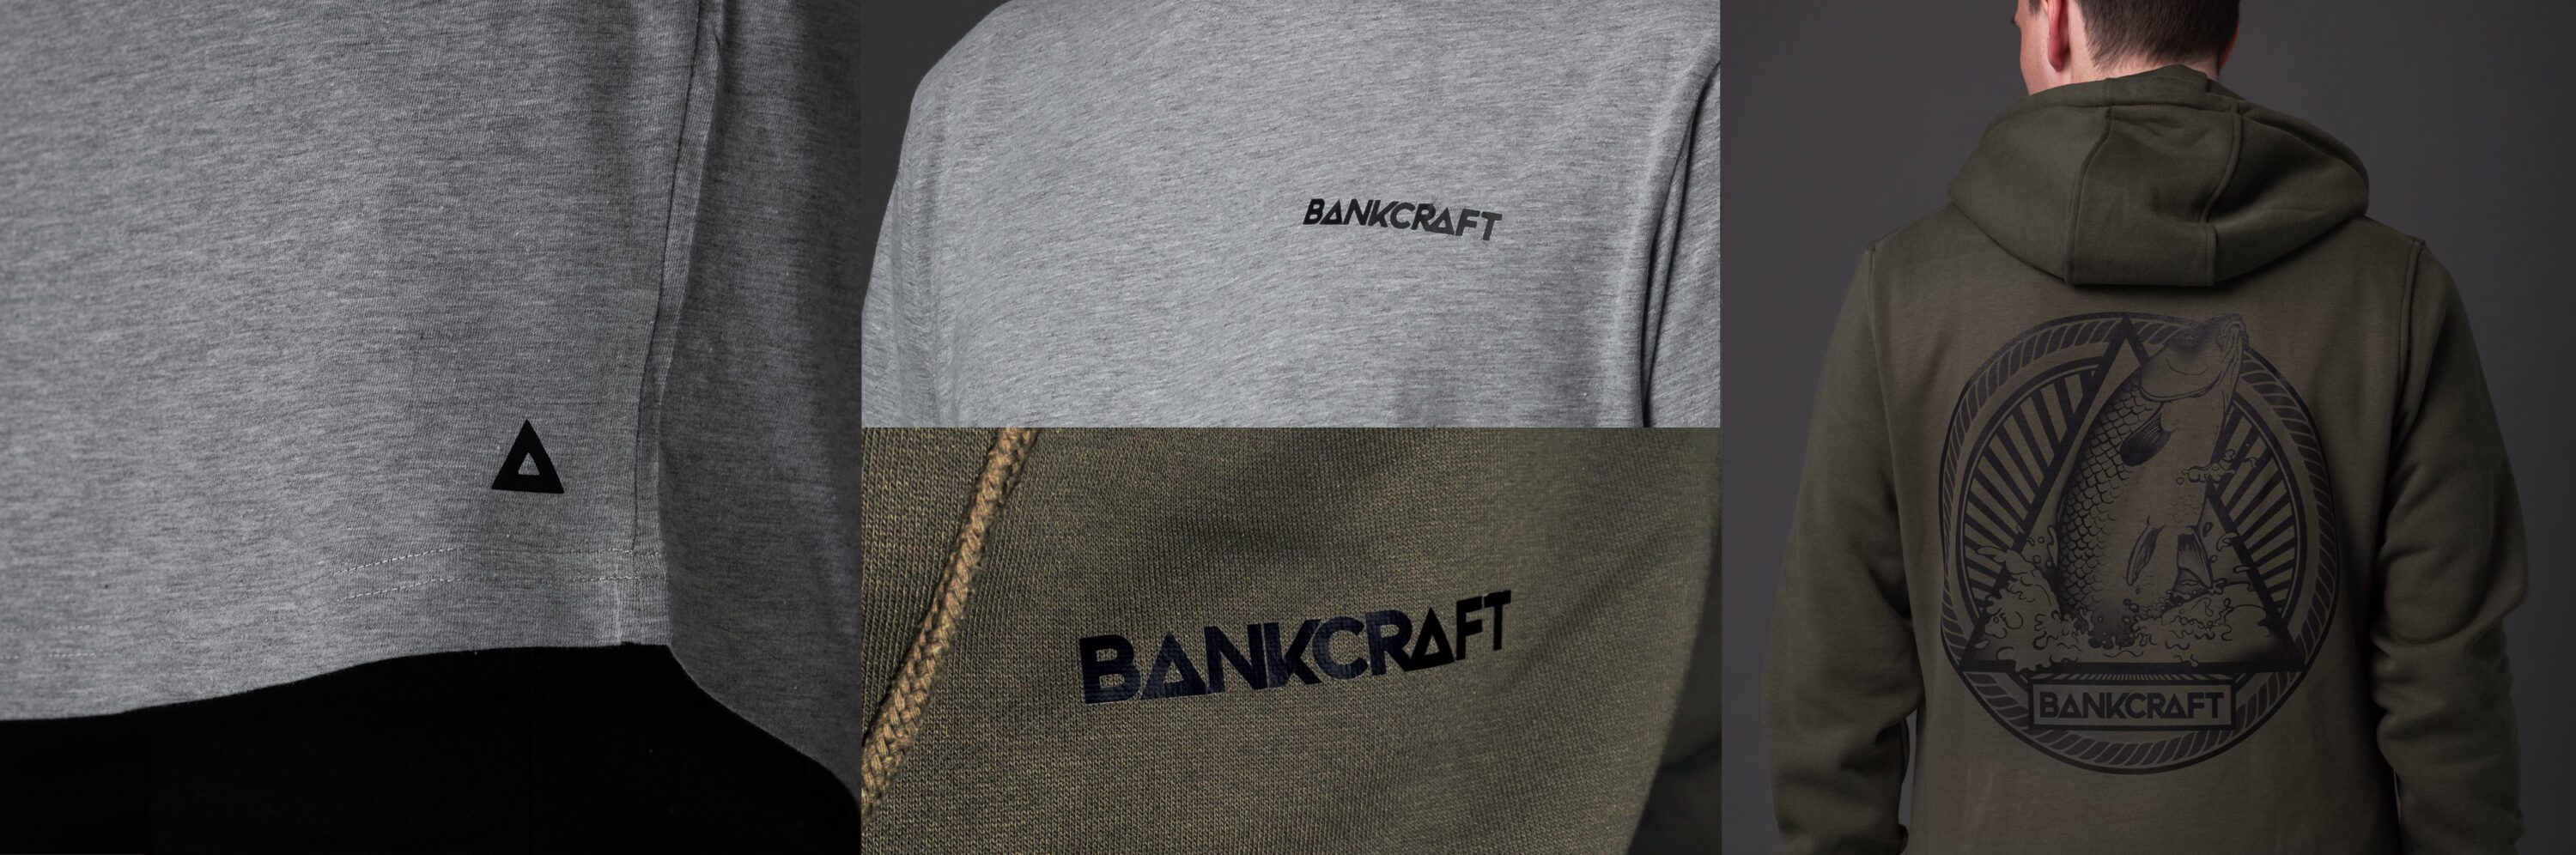 Bankcraft icon